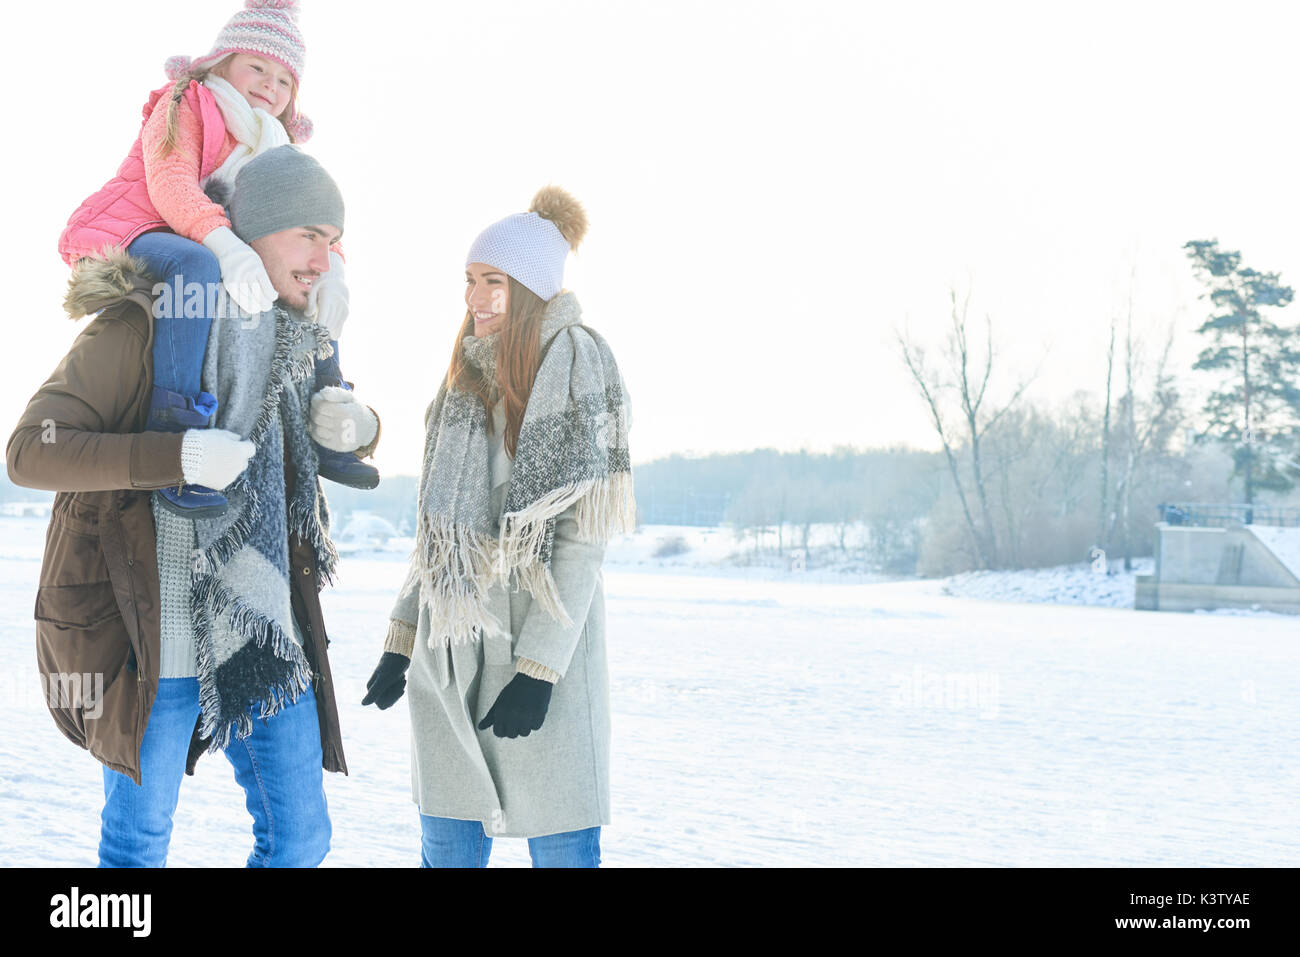 Family with child on winter holidays walking in the nature - Stock Image